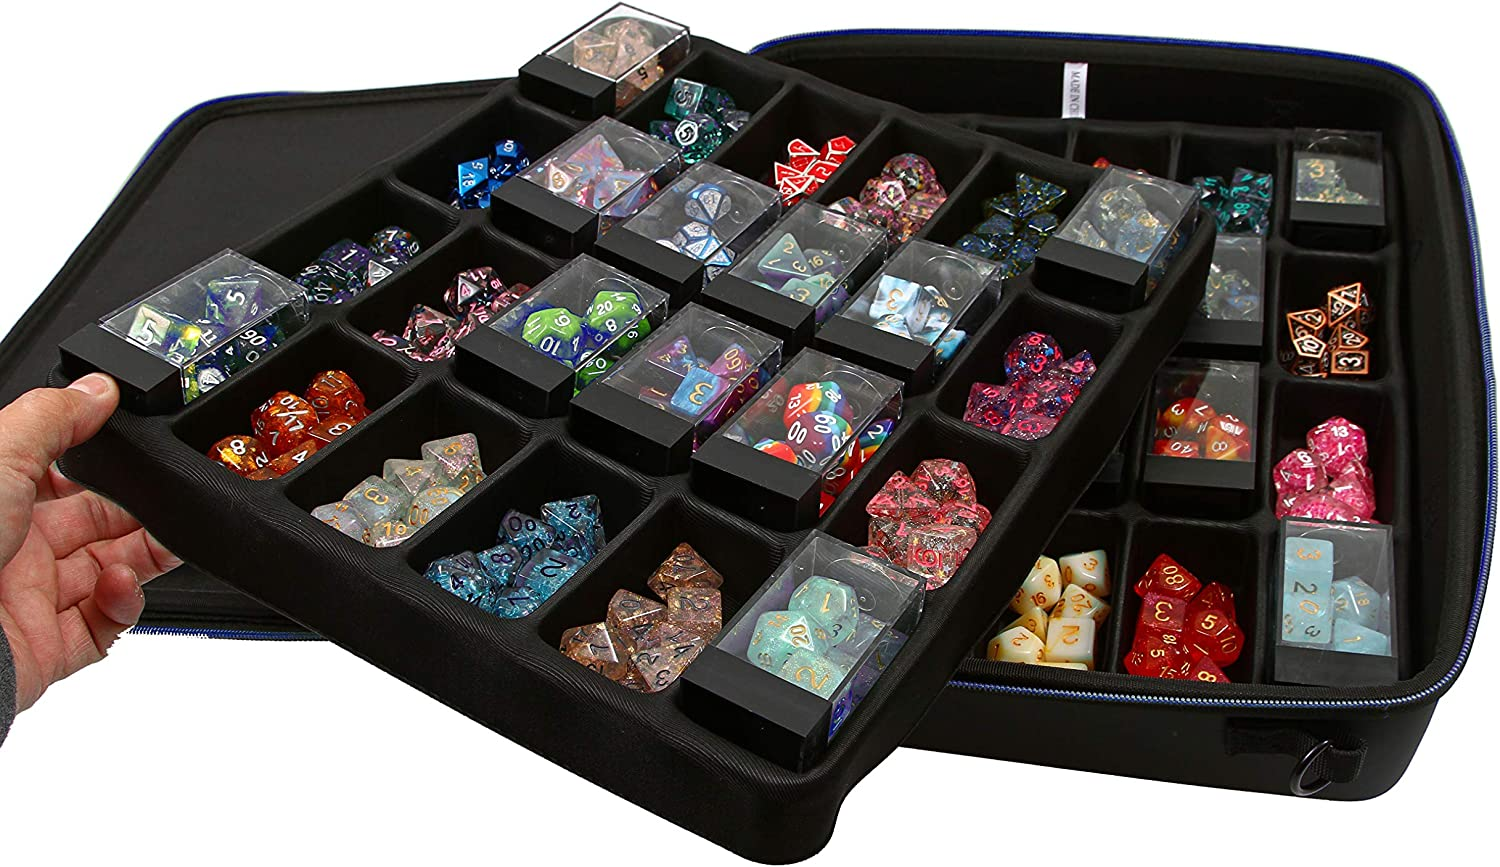 Forged Dice Co Holds 40 Plastic Dice Storage Cubes or 14 Dice Per Section up to 560 Total Dice Dice Tray and Display Case Compatible with Chessex Cubes and DND Dice Double Dice Tray Dice Case